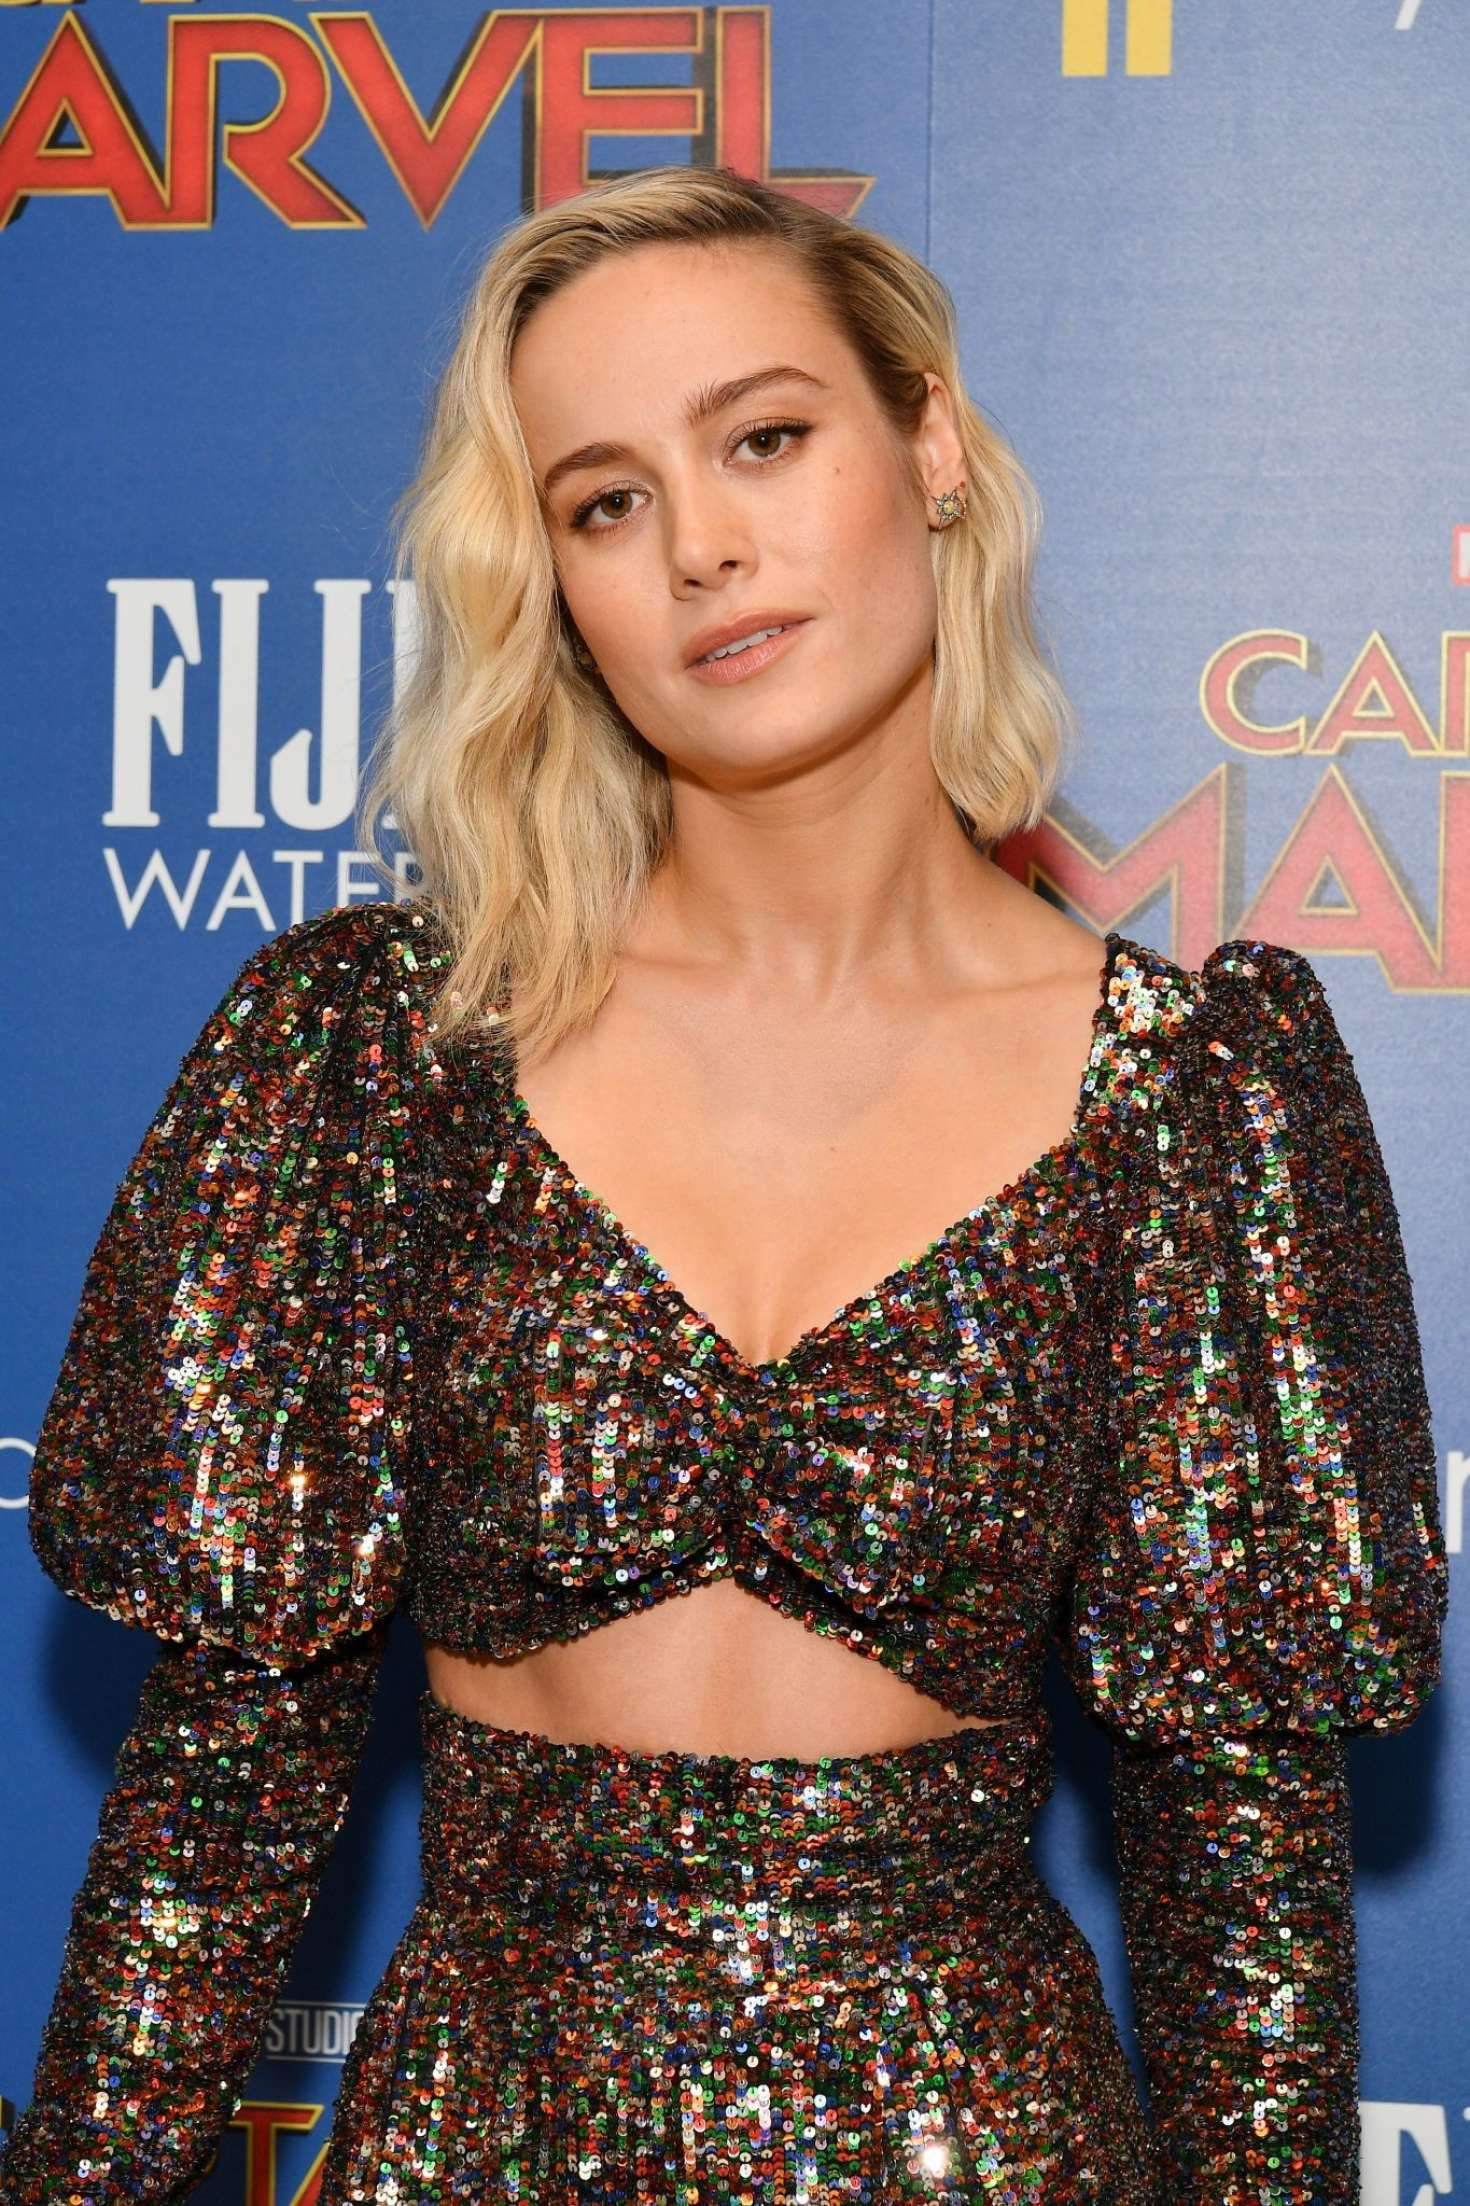 Brie Larson in new outfit at the 'Captain Marvel' Premiere, 2019